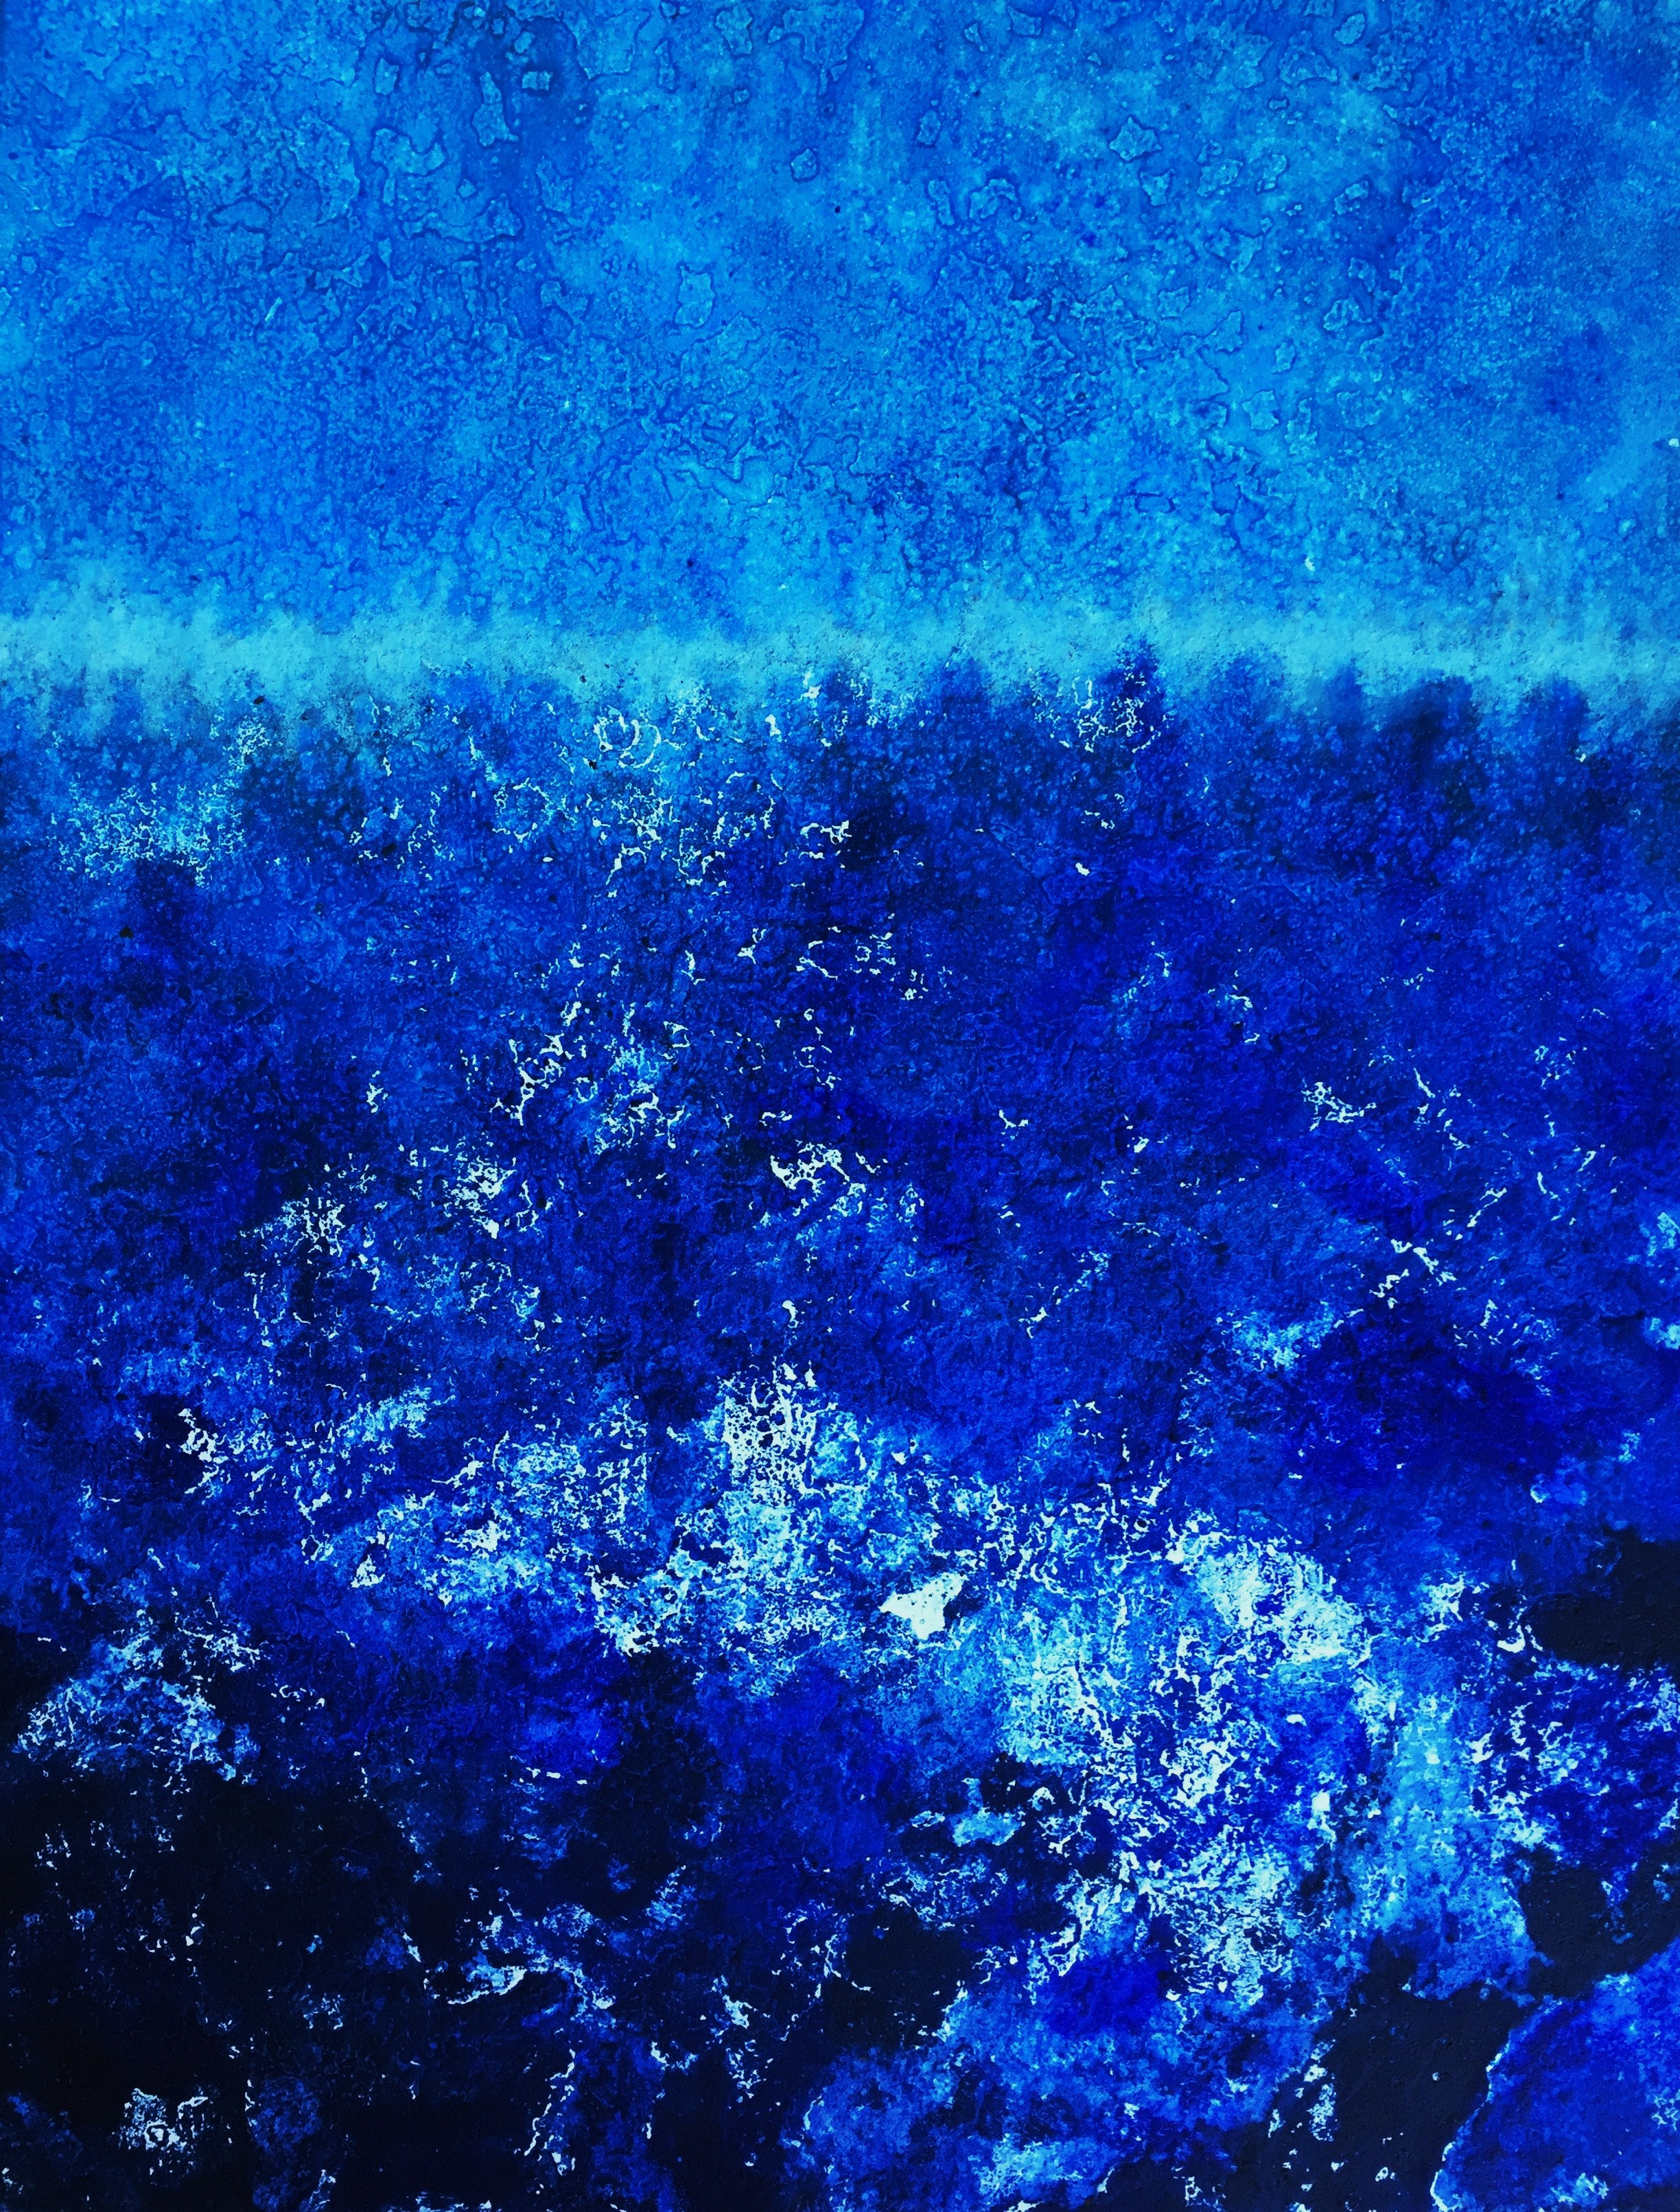 Immersion 76 x 56 cm Salt water etching